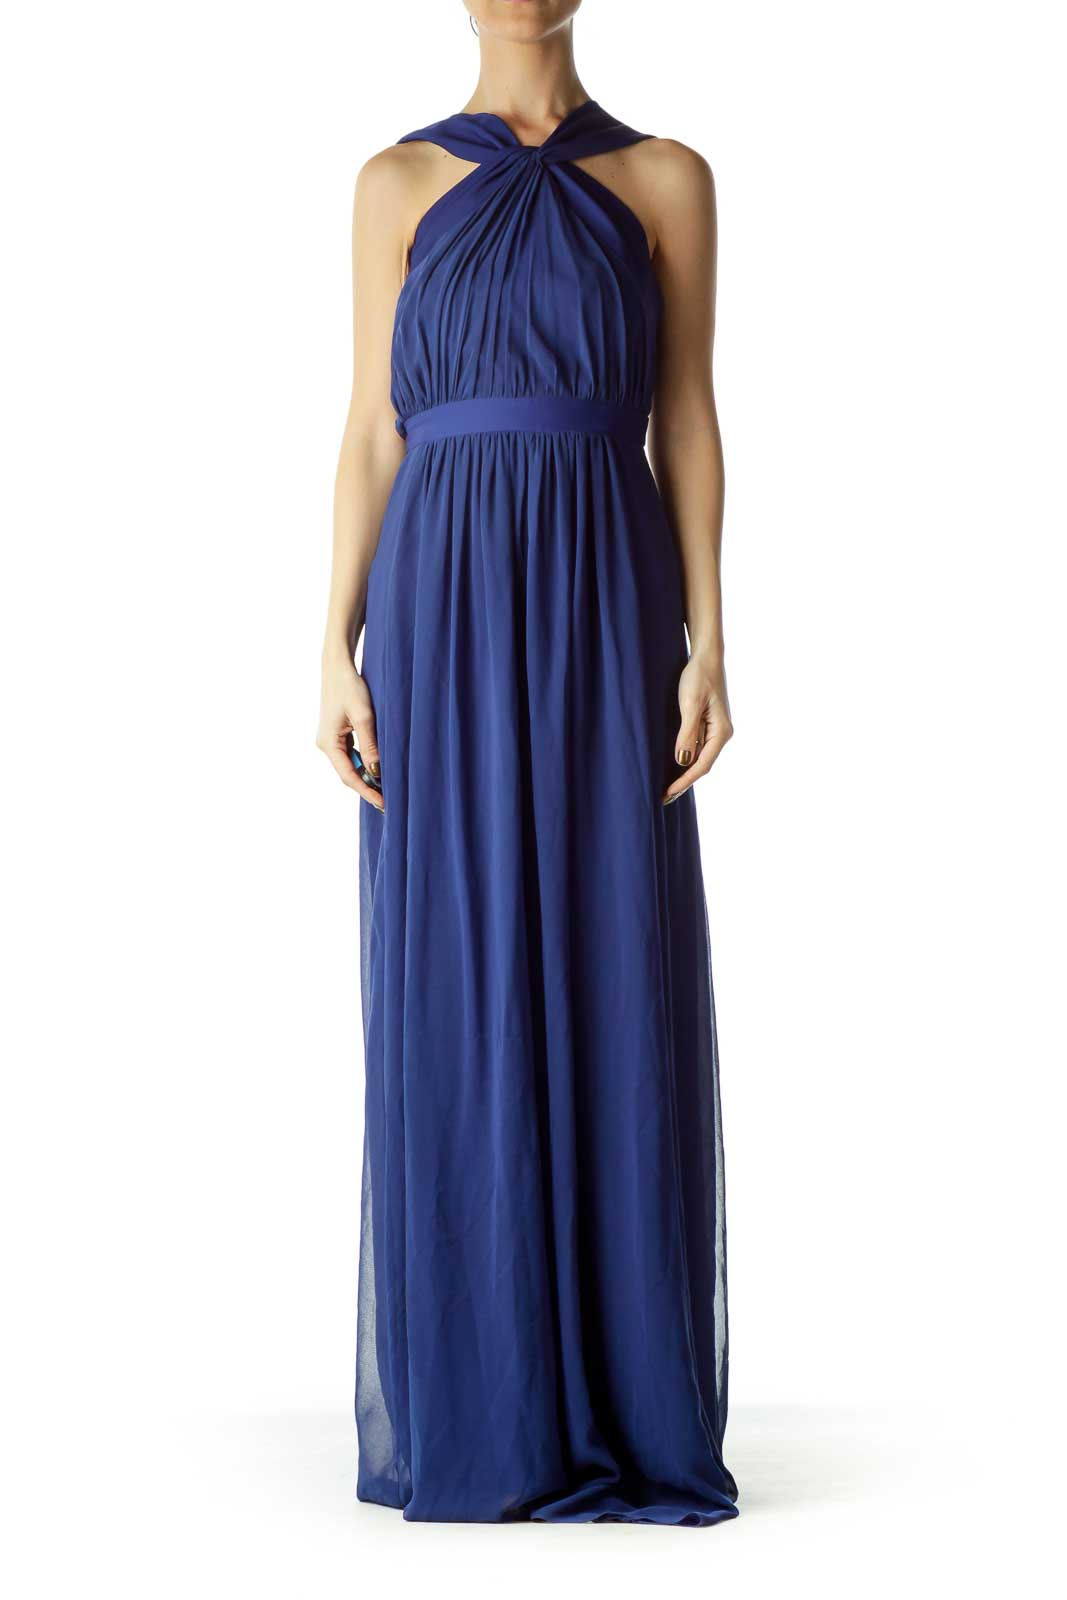 Blue Scrunched Sheer Evening Dress